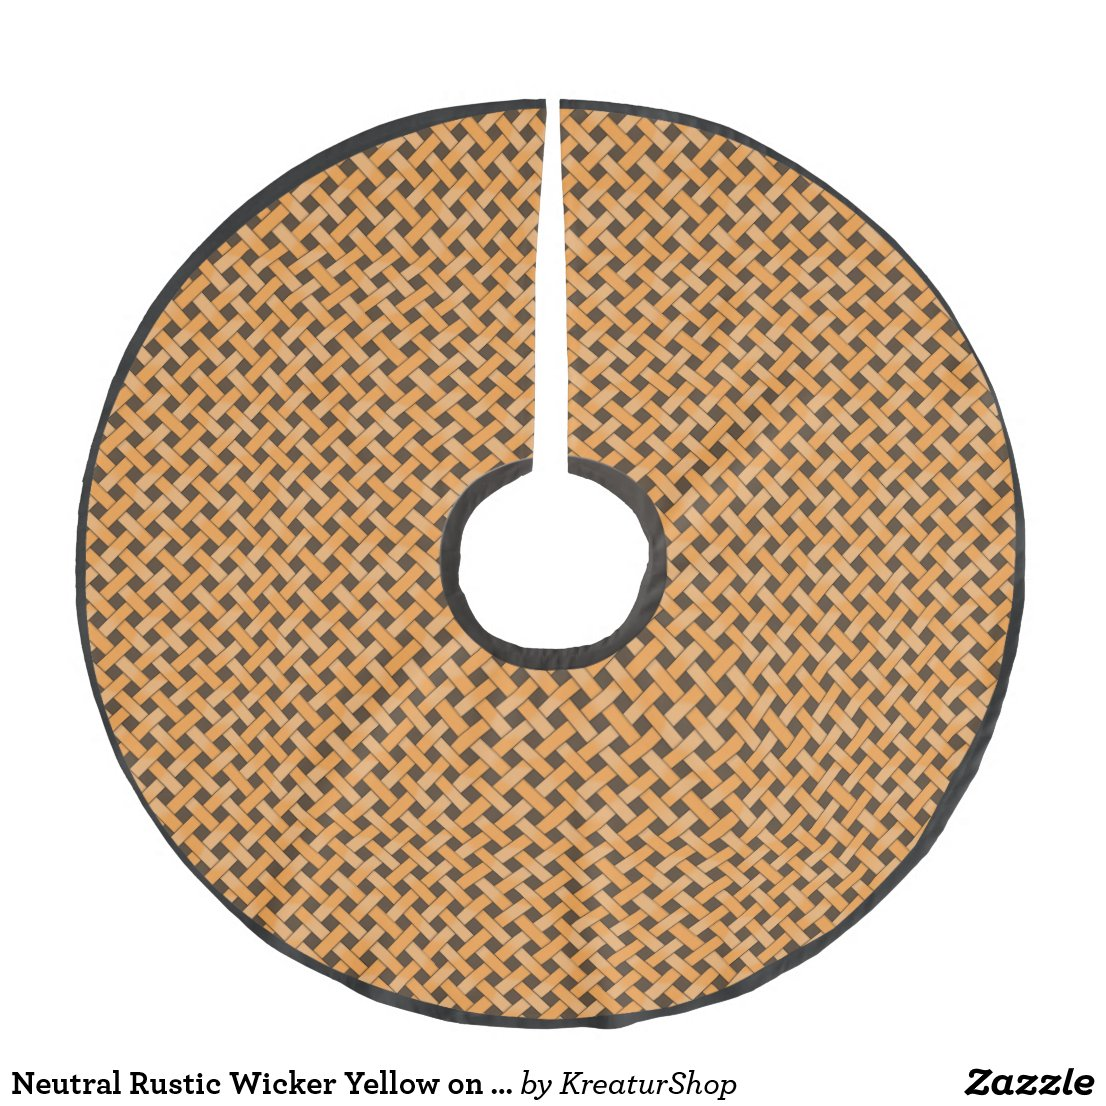 Neutral Rustic Wicker Yellow on Custom Brown